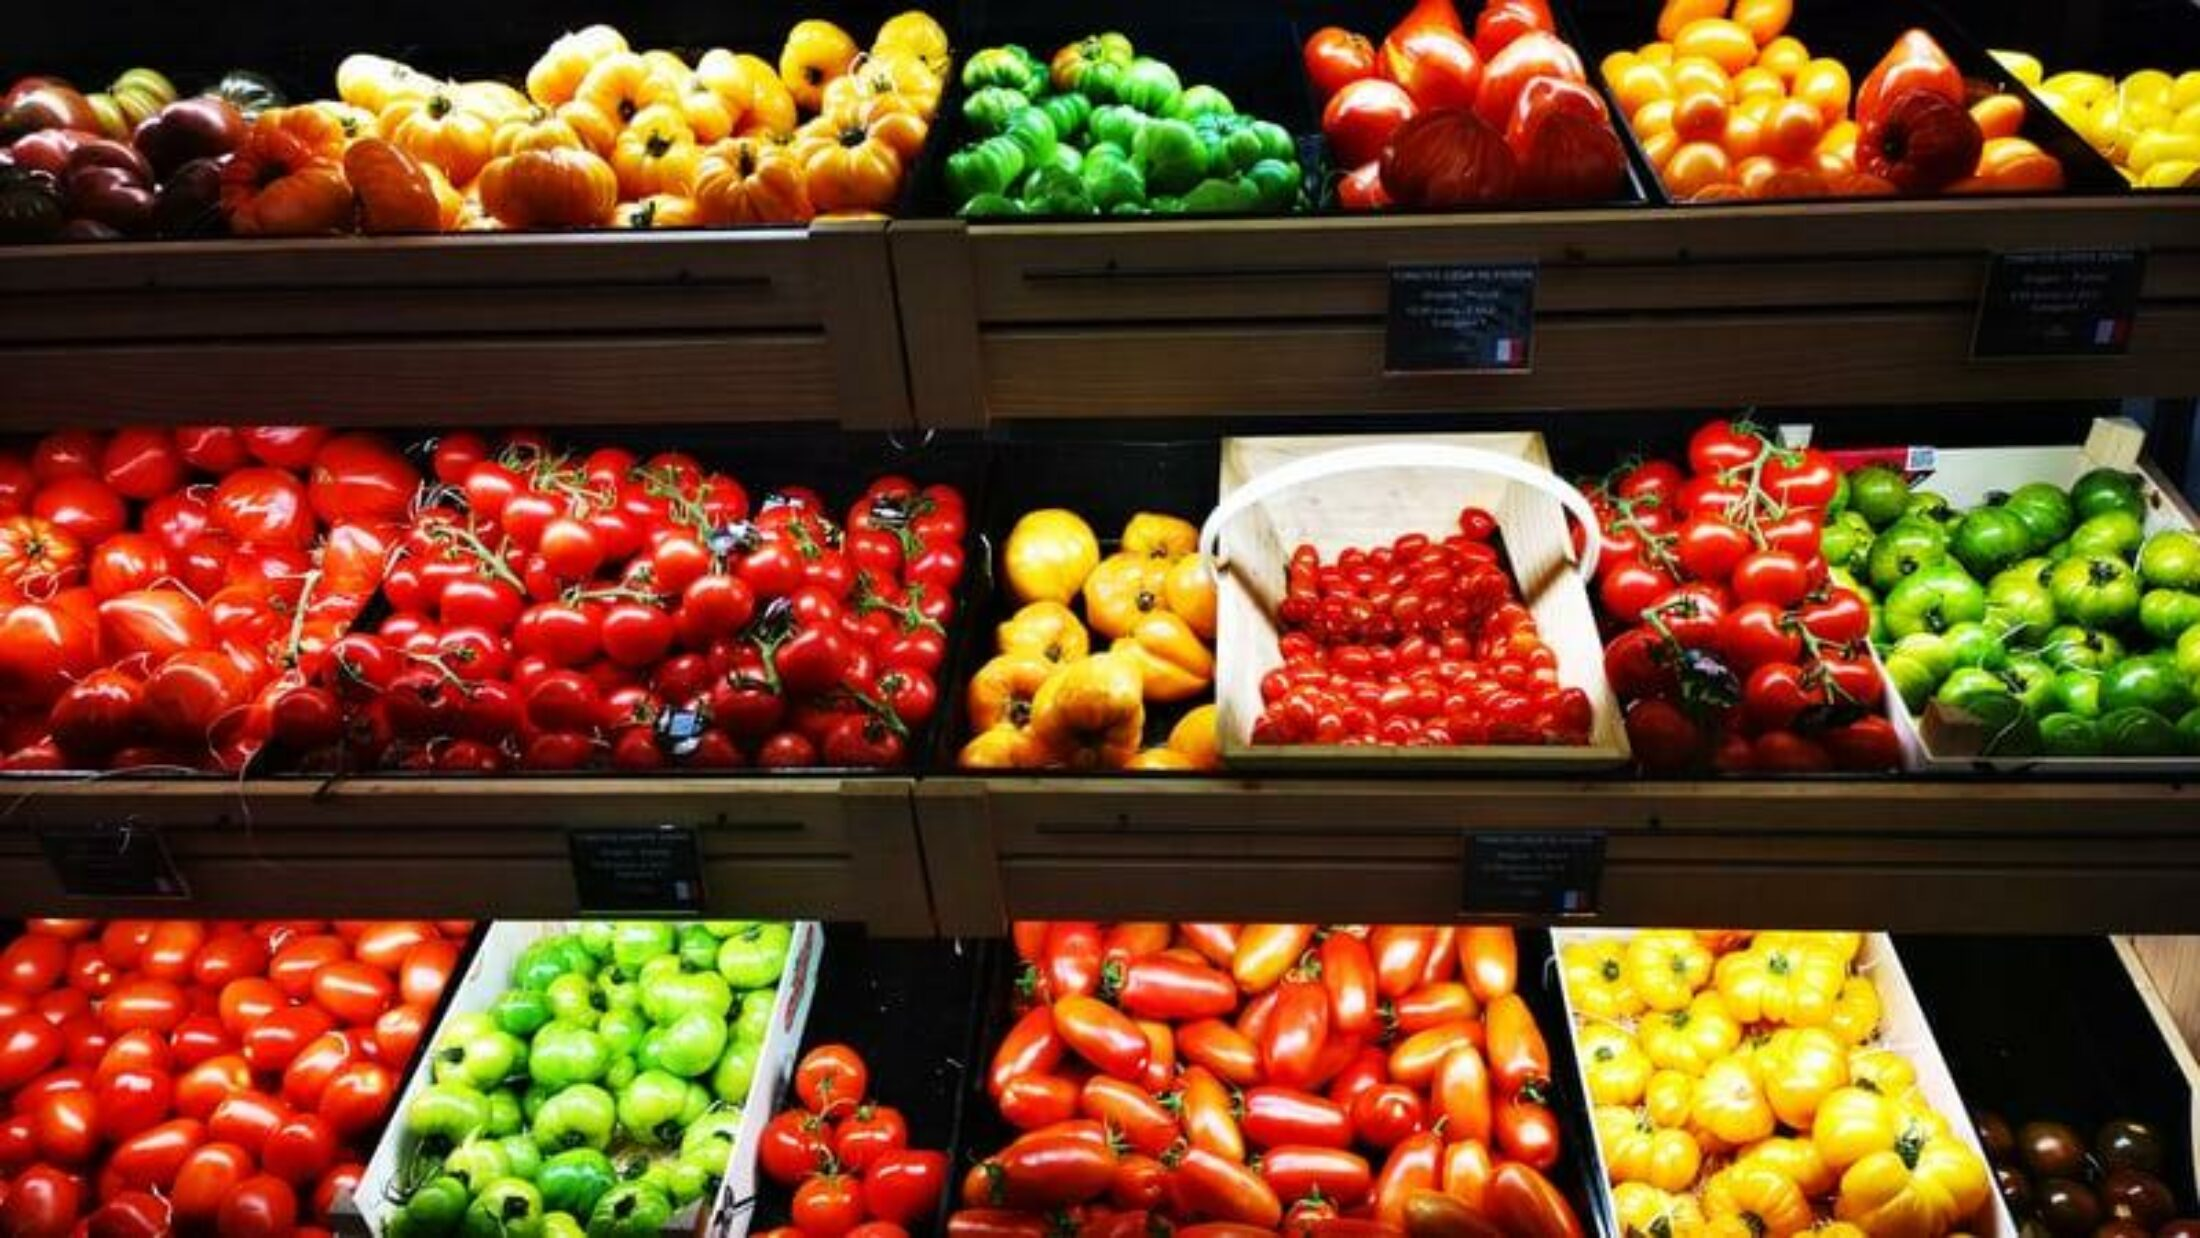 Groceries from around the world at the bottom of your street